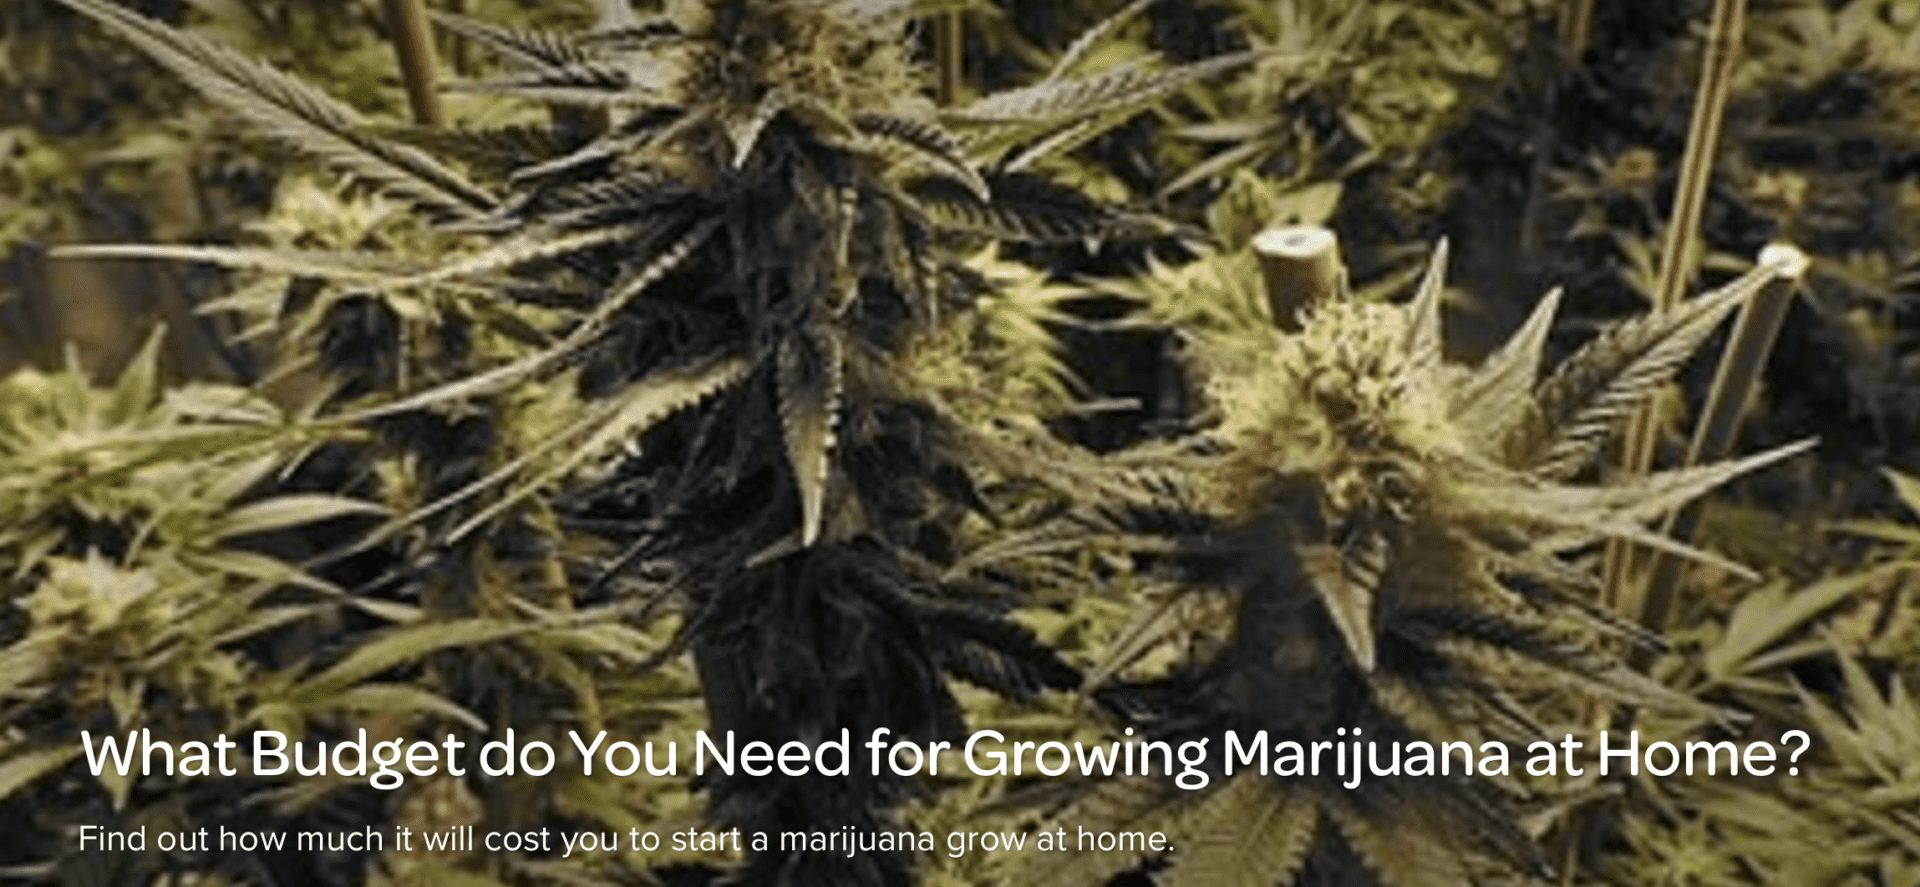 What Budget do You Need for Growing Marijuana at Home?